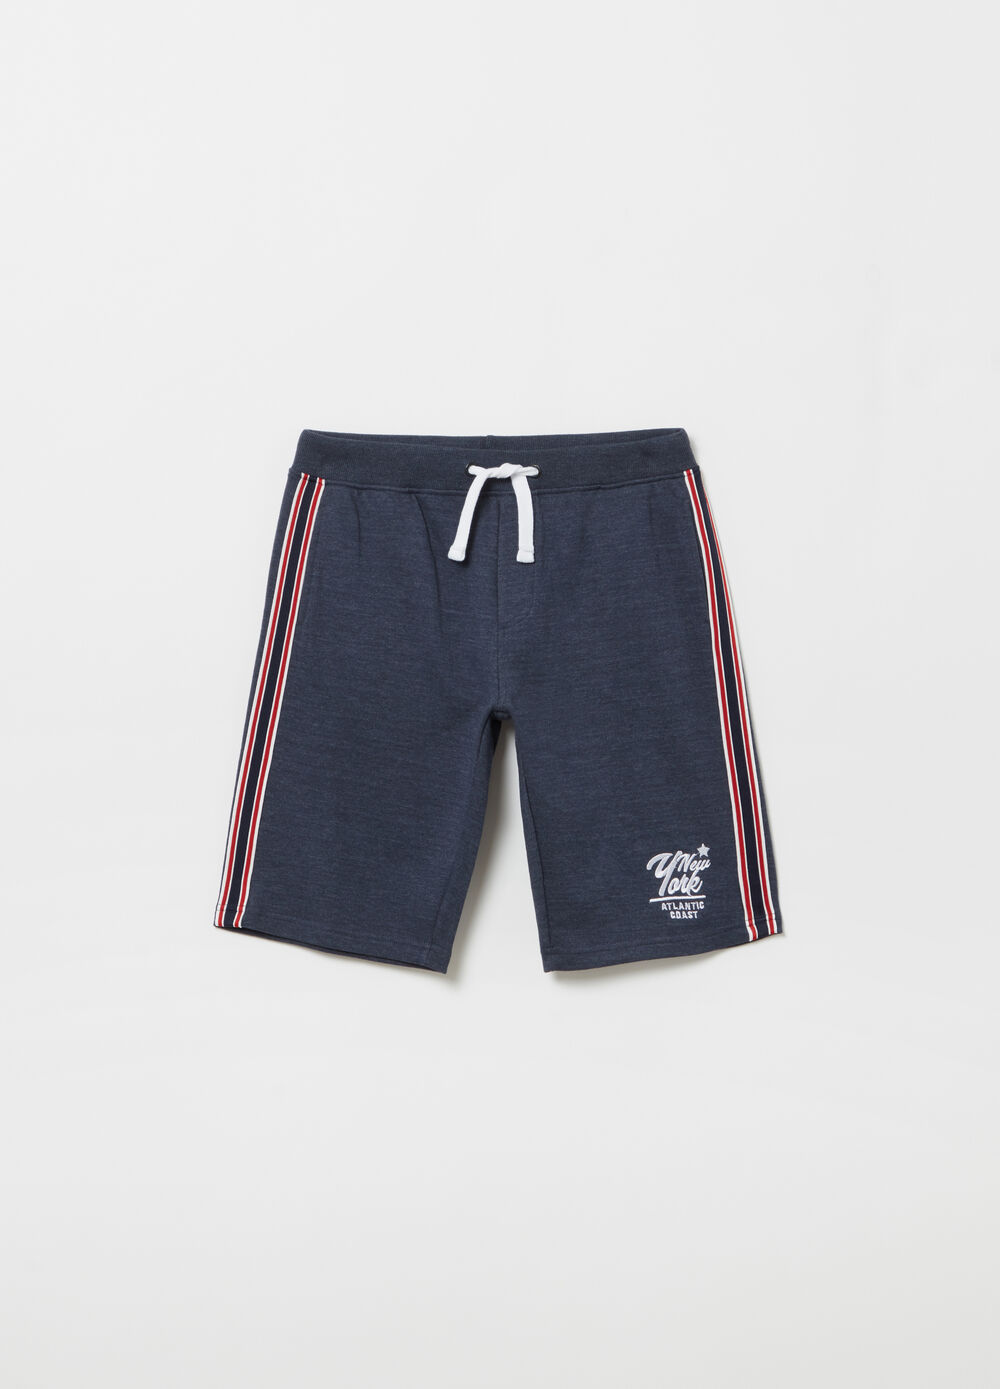 Mélange shorts with pocket, embroidery and drawstring